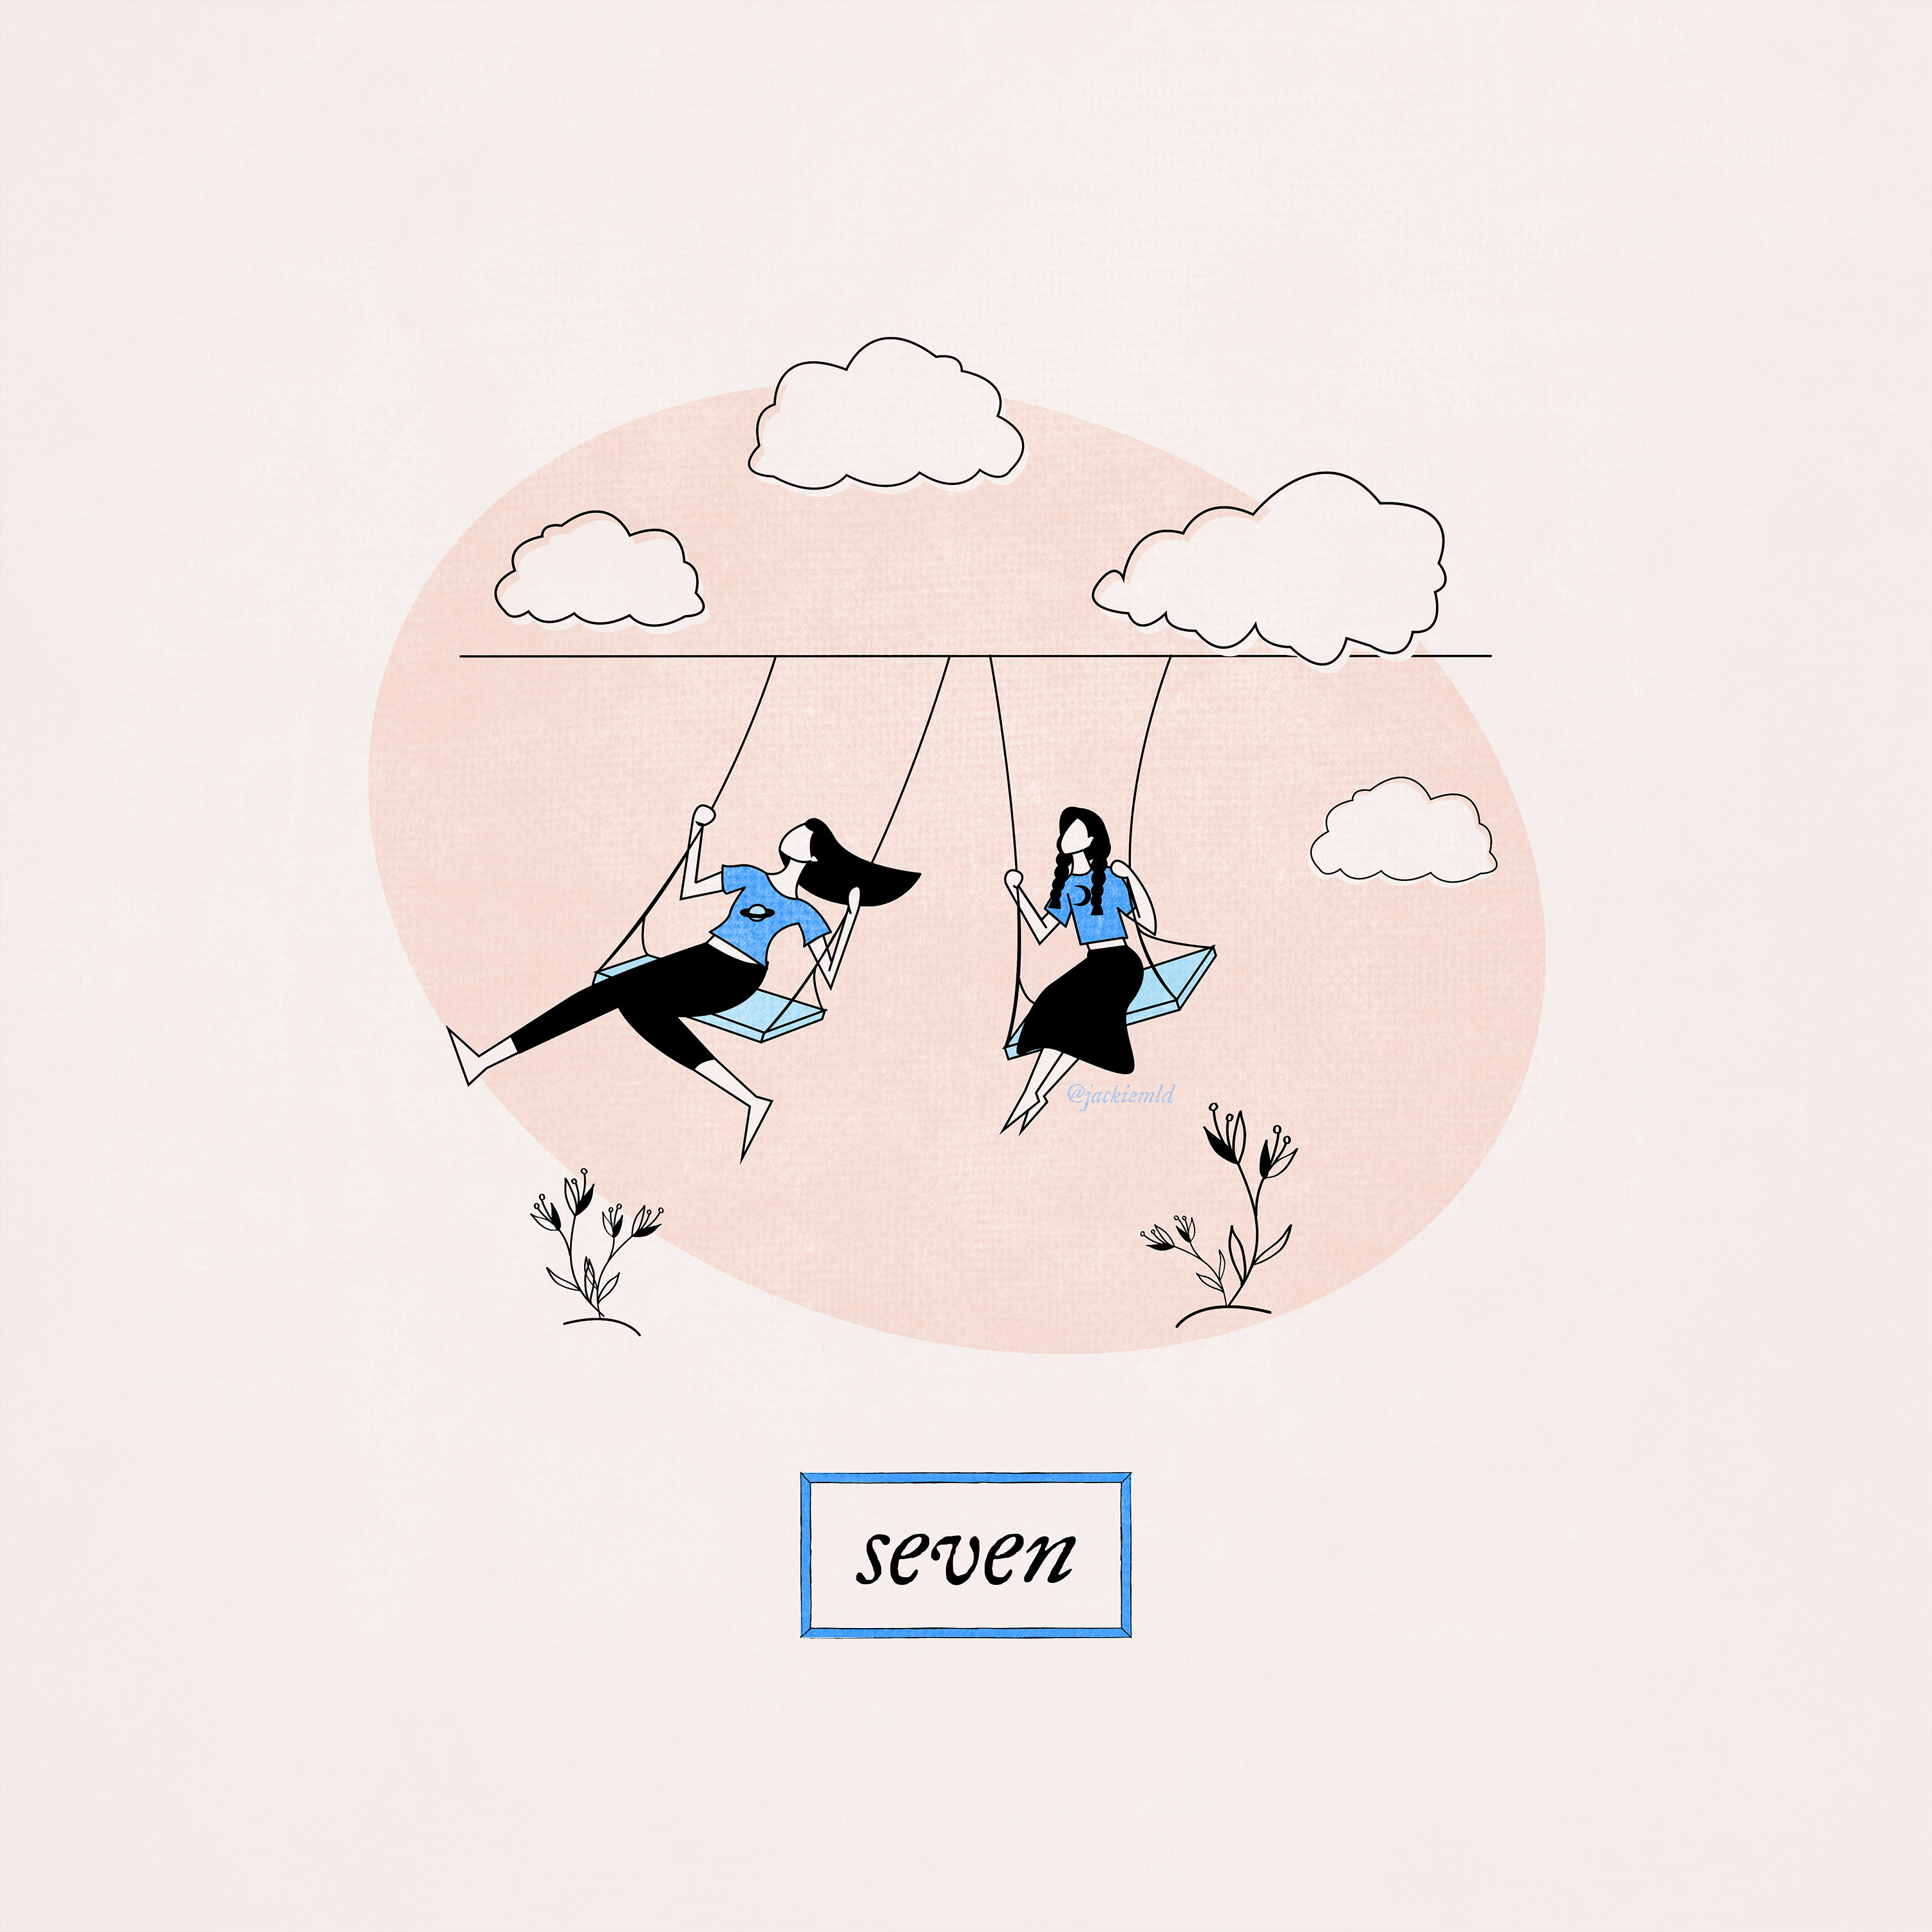 Two girls, one with long straight hair and one with braids, swinging next to each other on swings with clouds in the sky